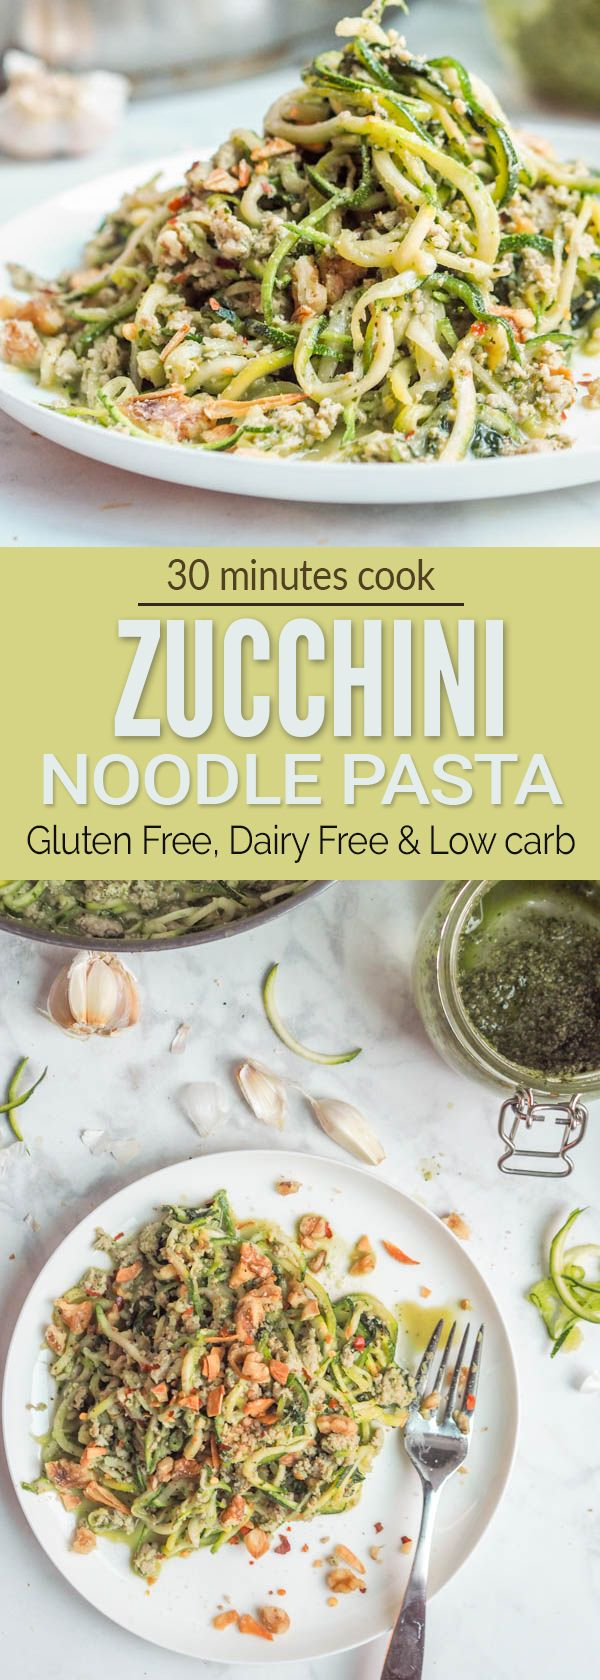 Whole30 pesto and chicken pasta made with paleo, gluten-free, dairy-free and low carb zucchini noodles. Perfect healthy weeknight dinner. Ready in 30 minutes.